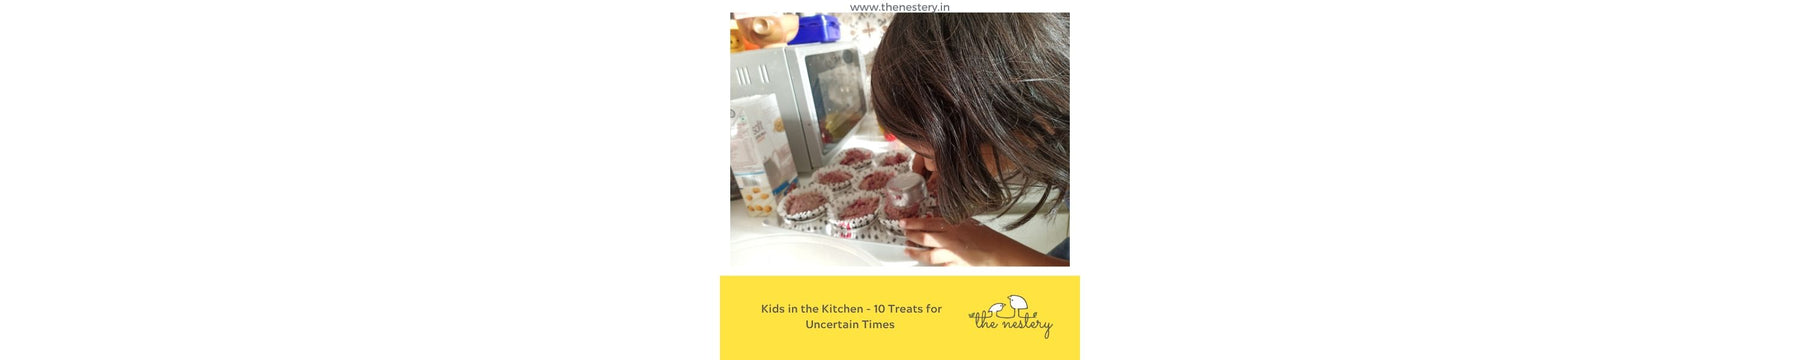 Kids in the Kitchen - 10 Treats for Uncertain Times